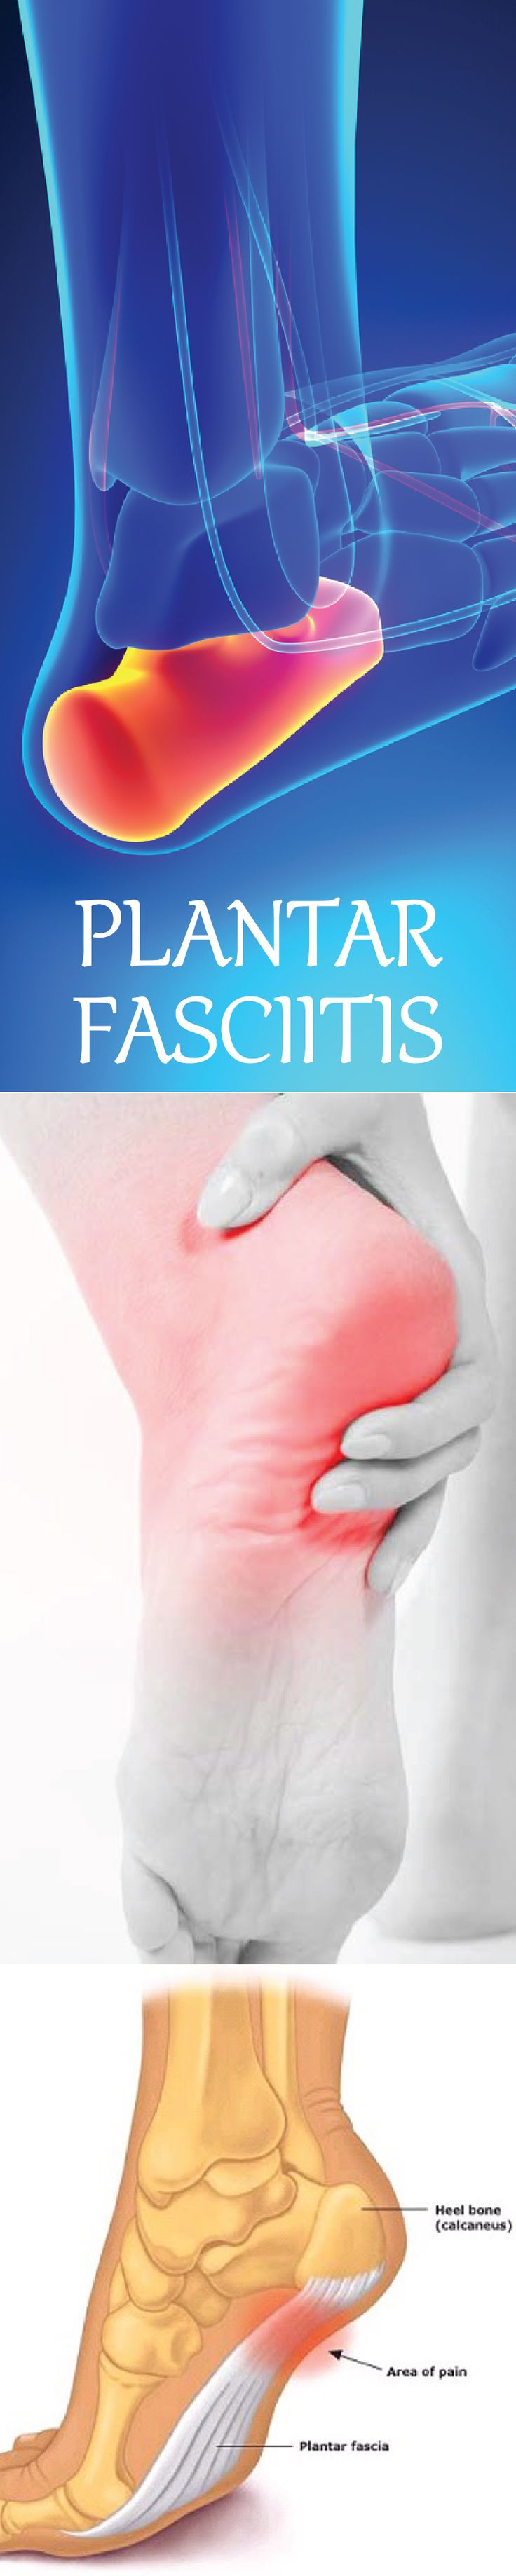 5 Ways to Prevent Plantar Fasciitis                                                                                                                                                                                 More